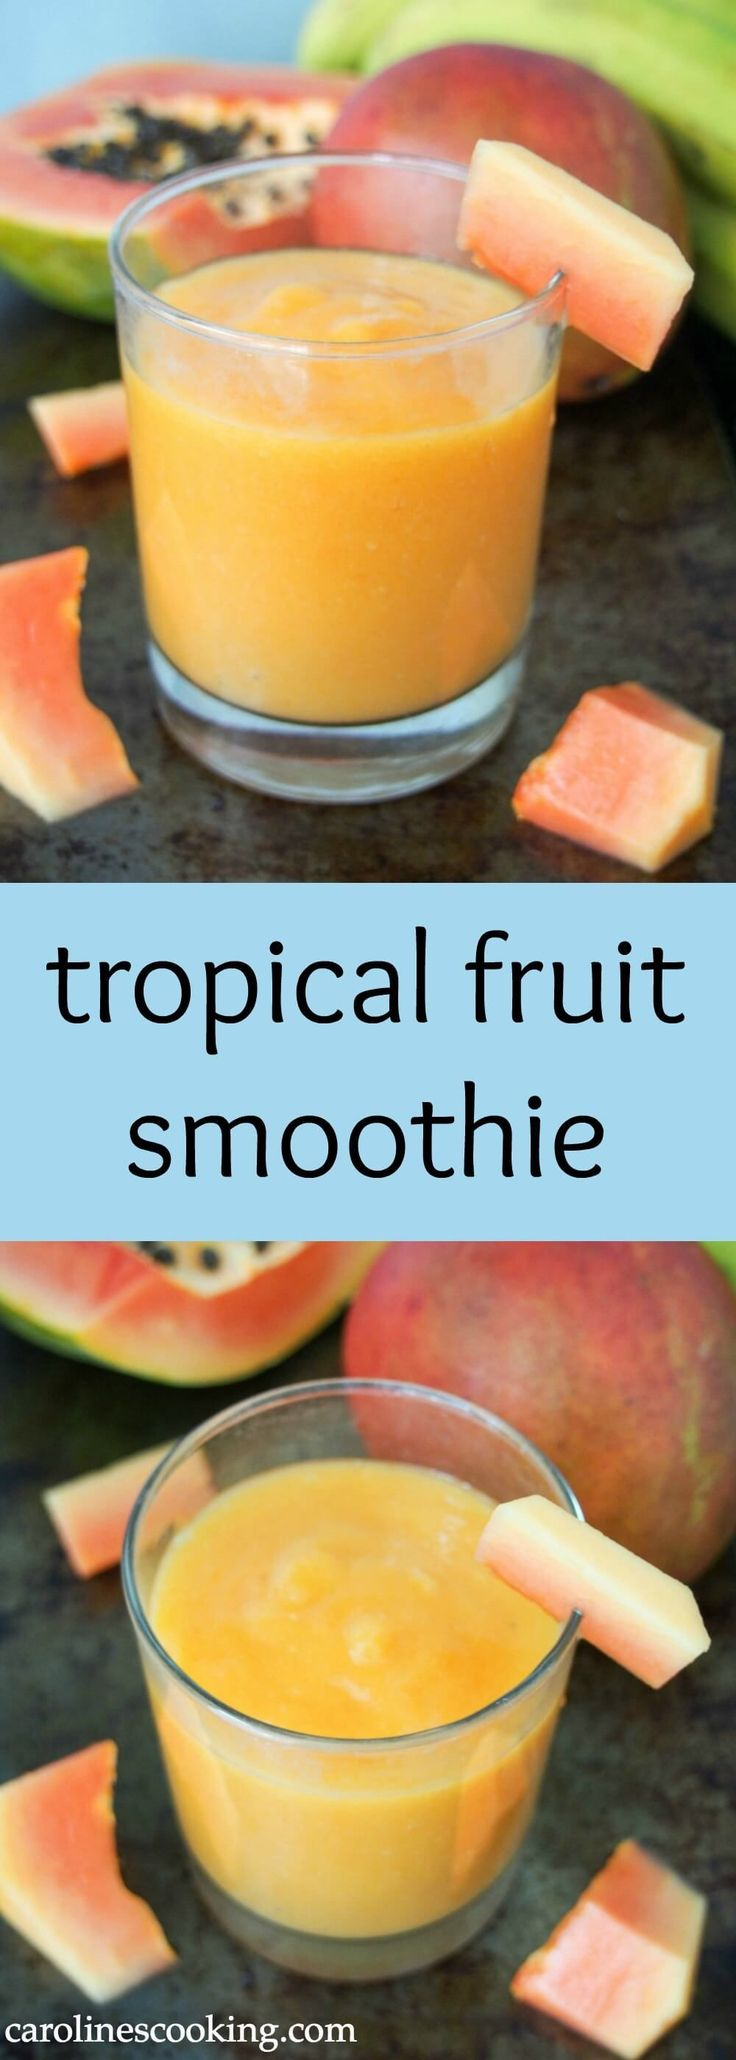 This tropical fruit smoothie is made with mango and papaya for a refreshing, tasty and vitamin-C packed drink. Made just with fruit and fruit juice, with an optional boost from flax seeds, it's also naturally dairy free. Delicious and good for you all in one. #smoothie #dairyfree